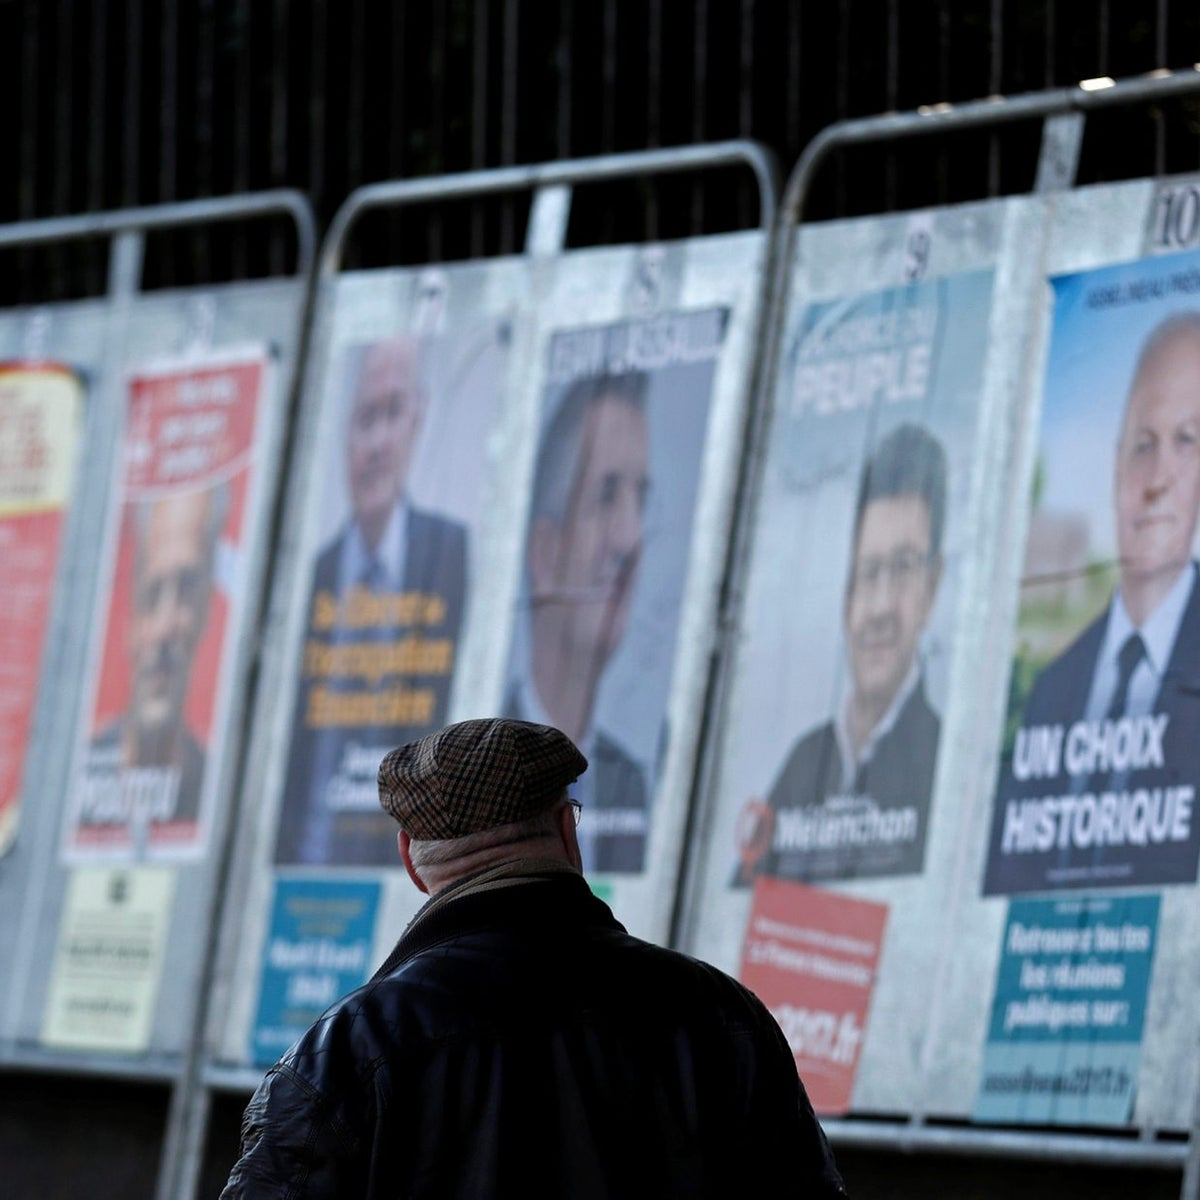 A man studying campaign posters of the 11 candidates running in the 2017 French presidential election, April 19, 2017.